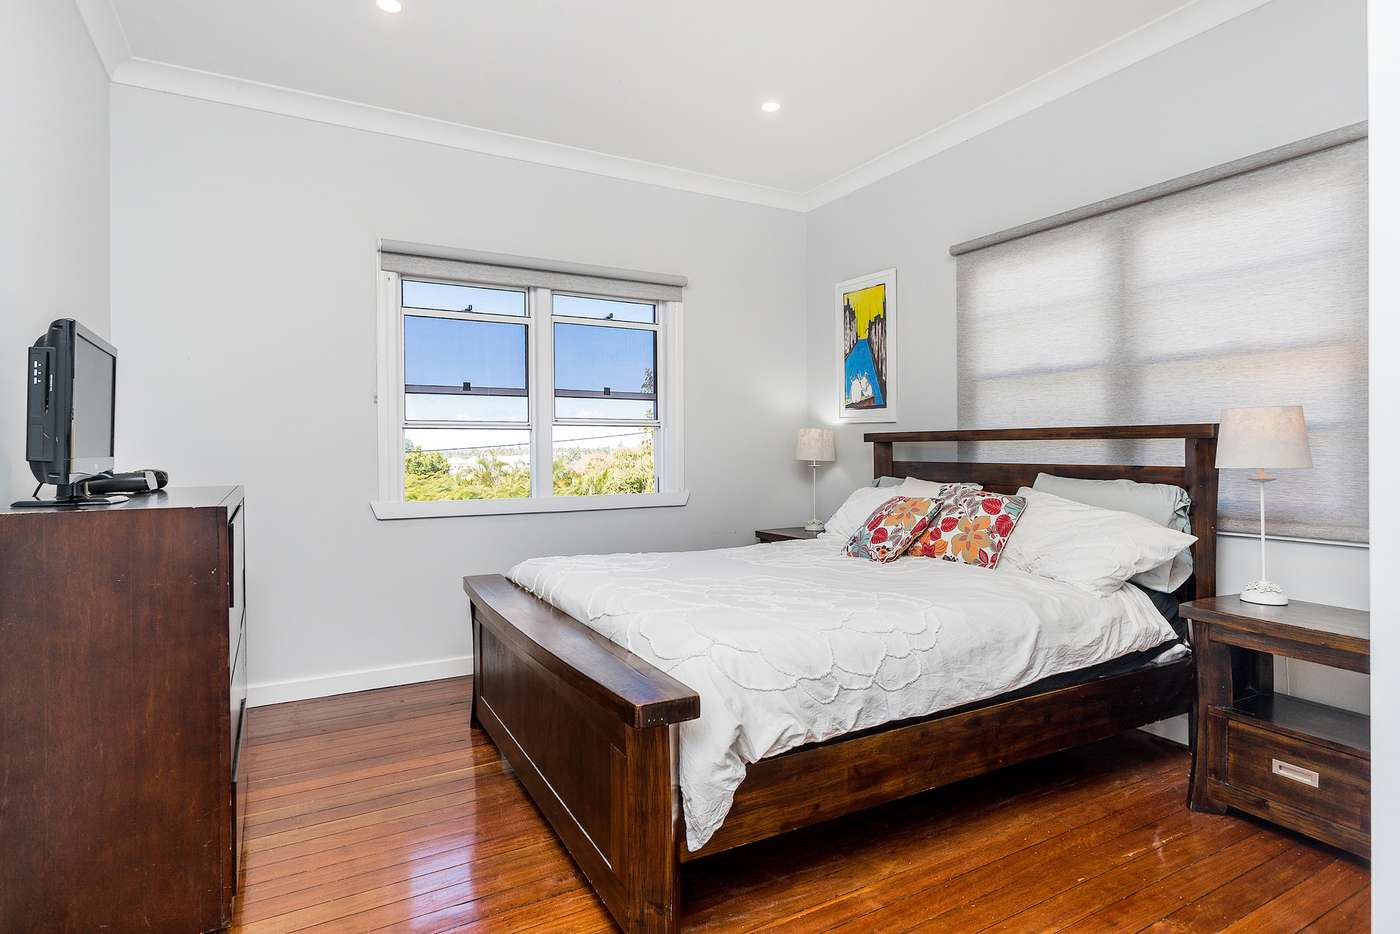 Fifth view of Homely house listing, 35 Adelaide Street, Tweed Heads NSW 2485